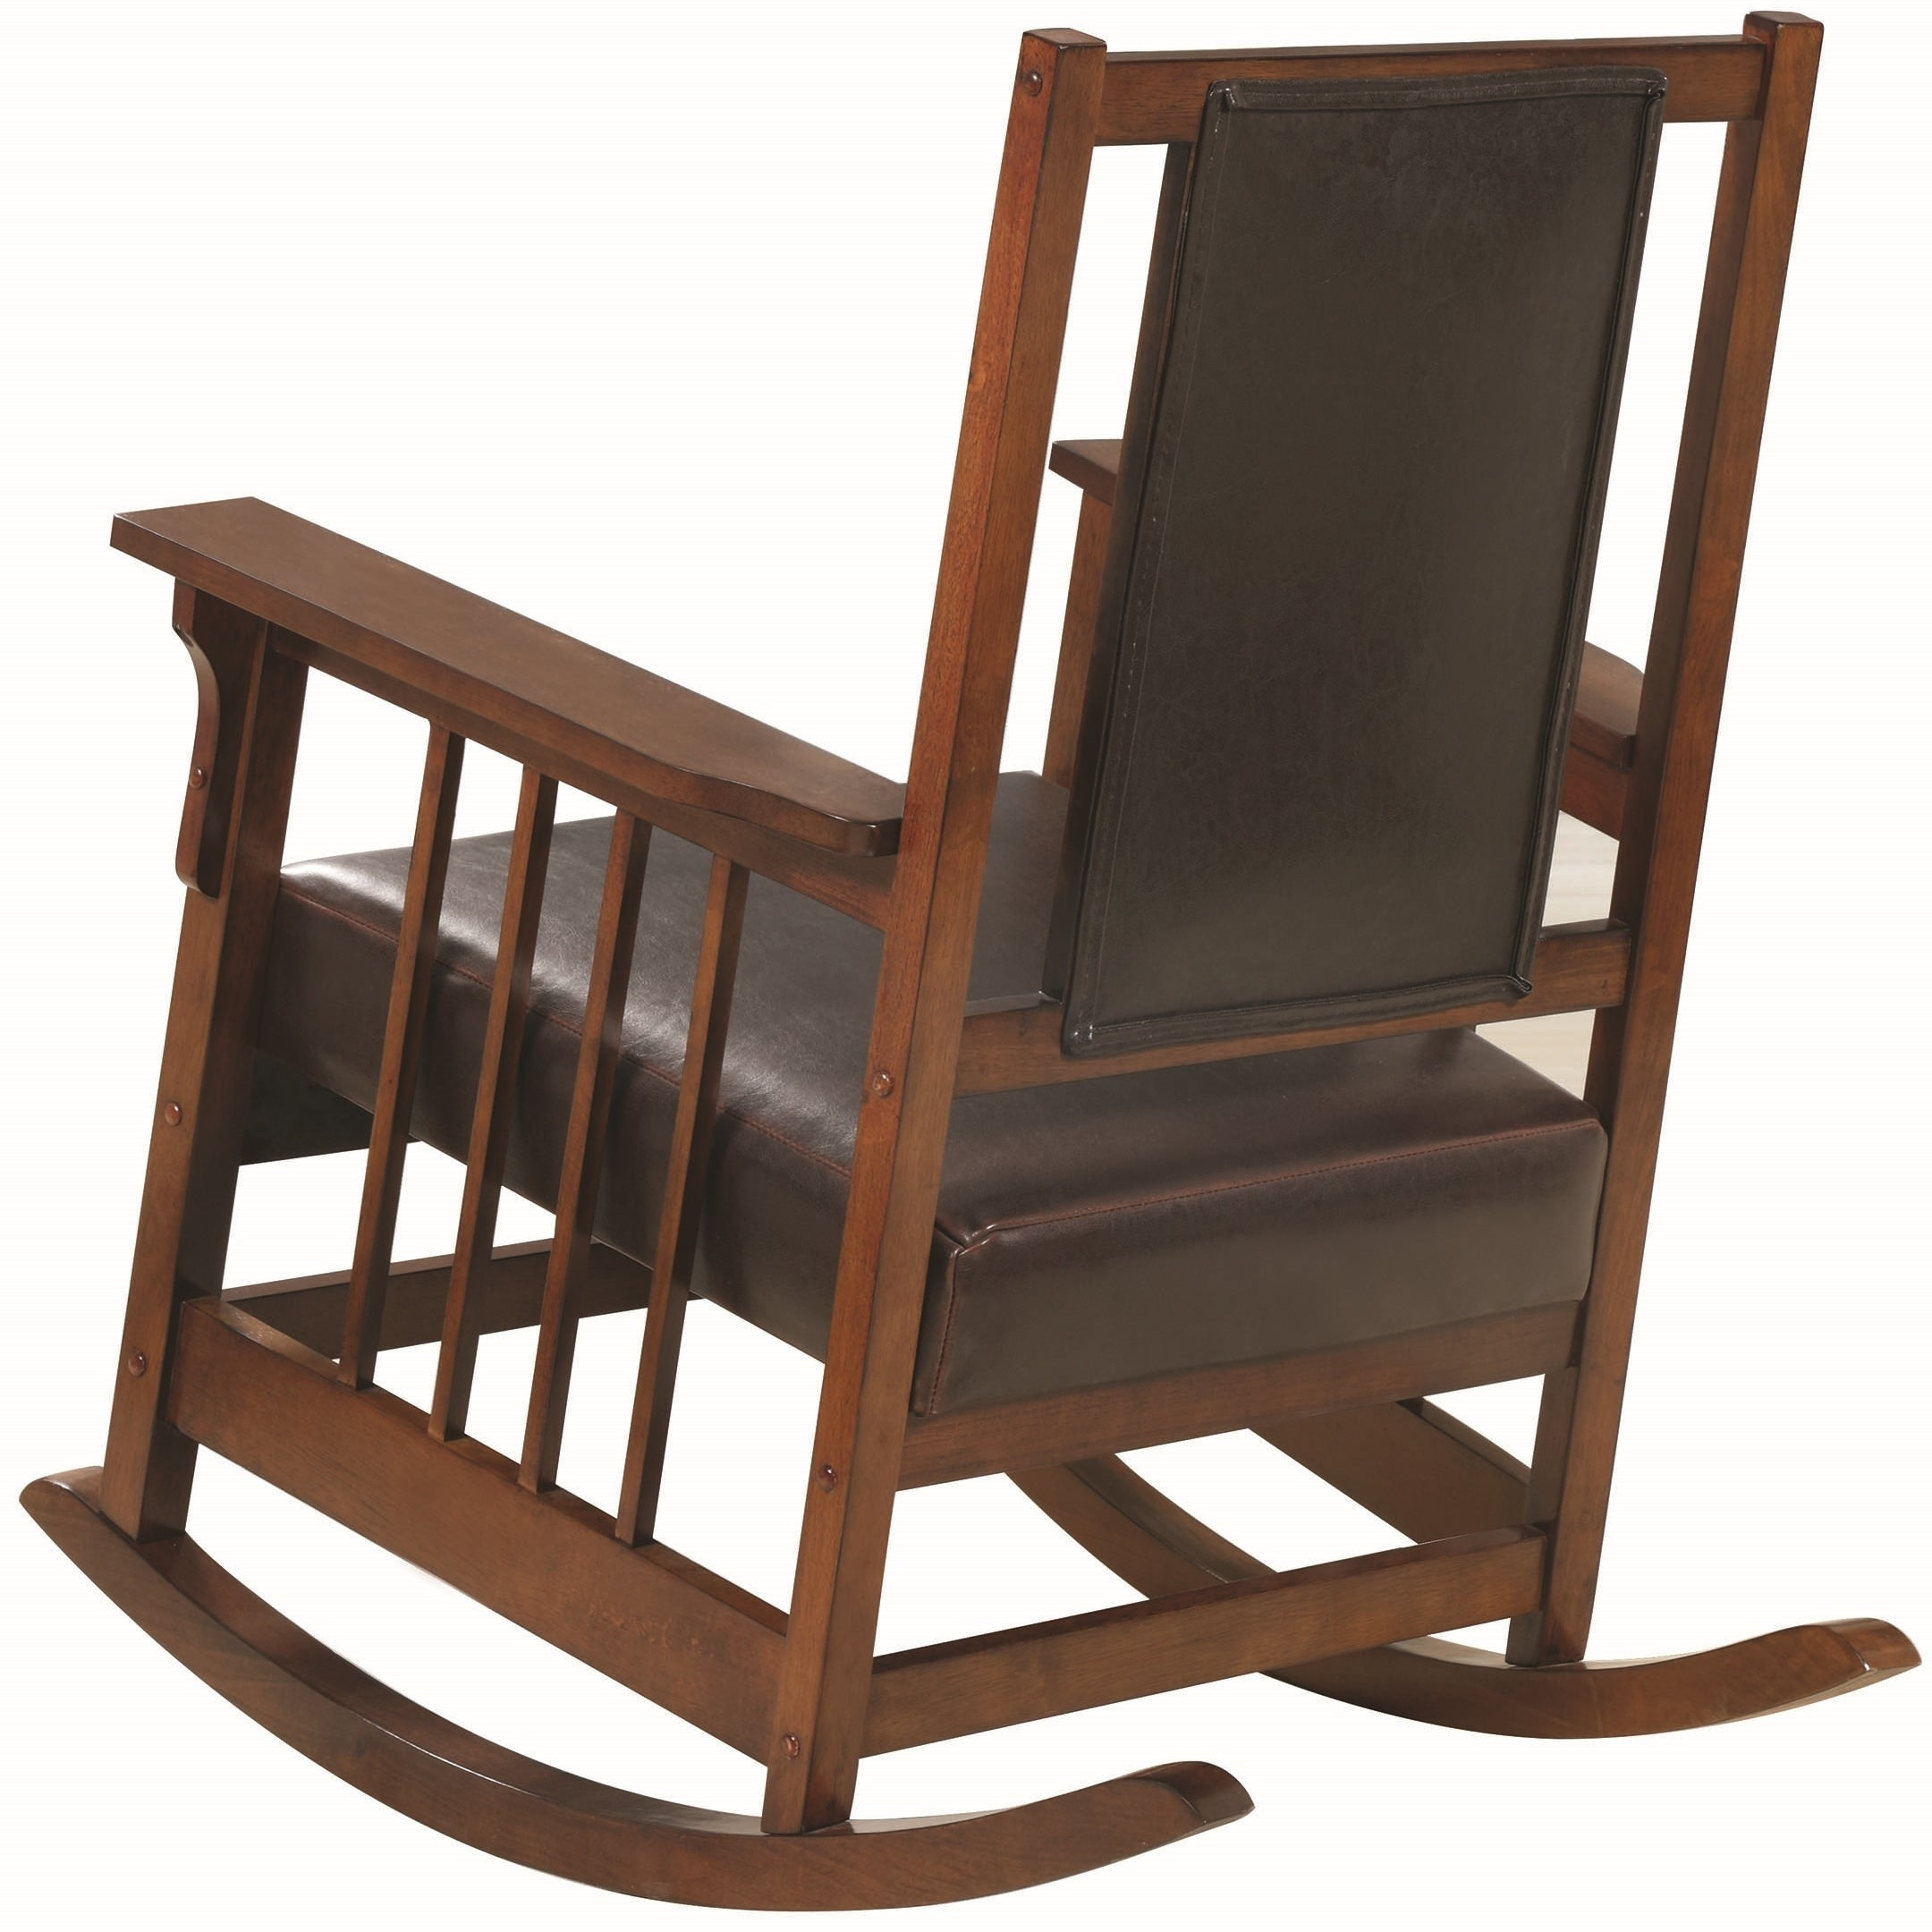 Inspiration about Mission Design Wood Rocking Chair With Brown Leather Seat Throughout Luxury Mission Style Rocking Chairs (#12 of 20)